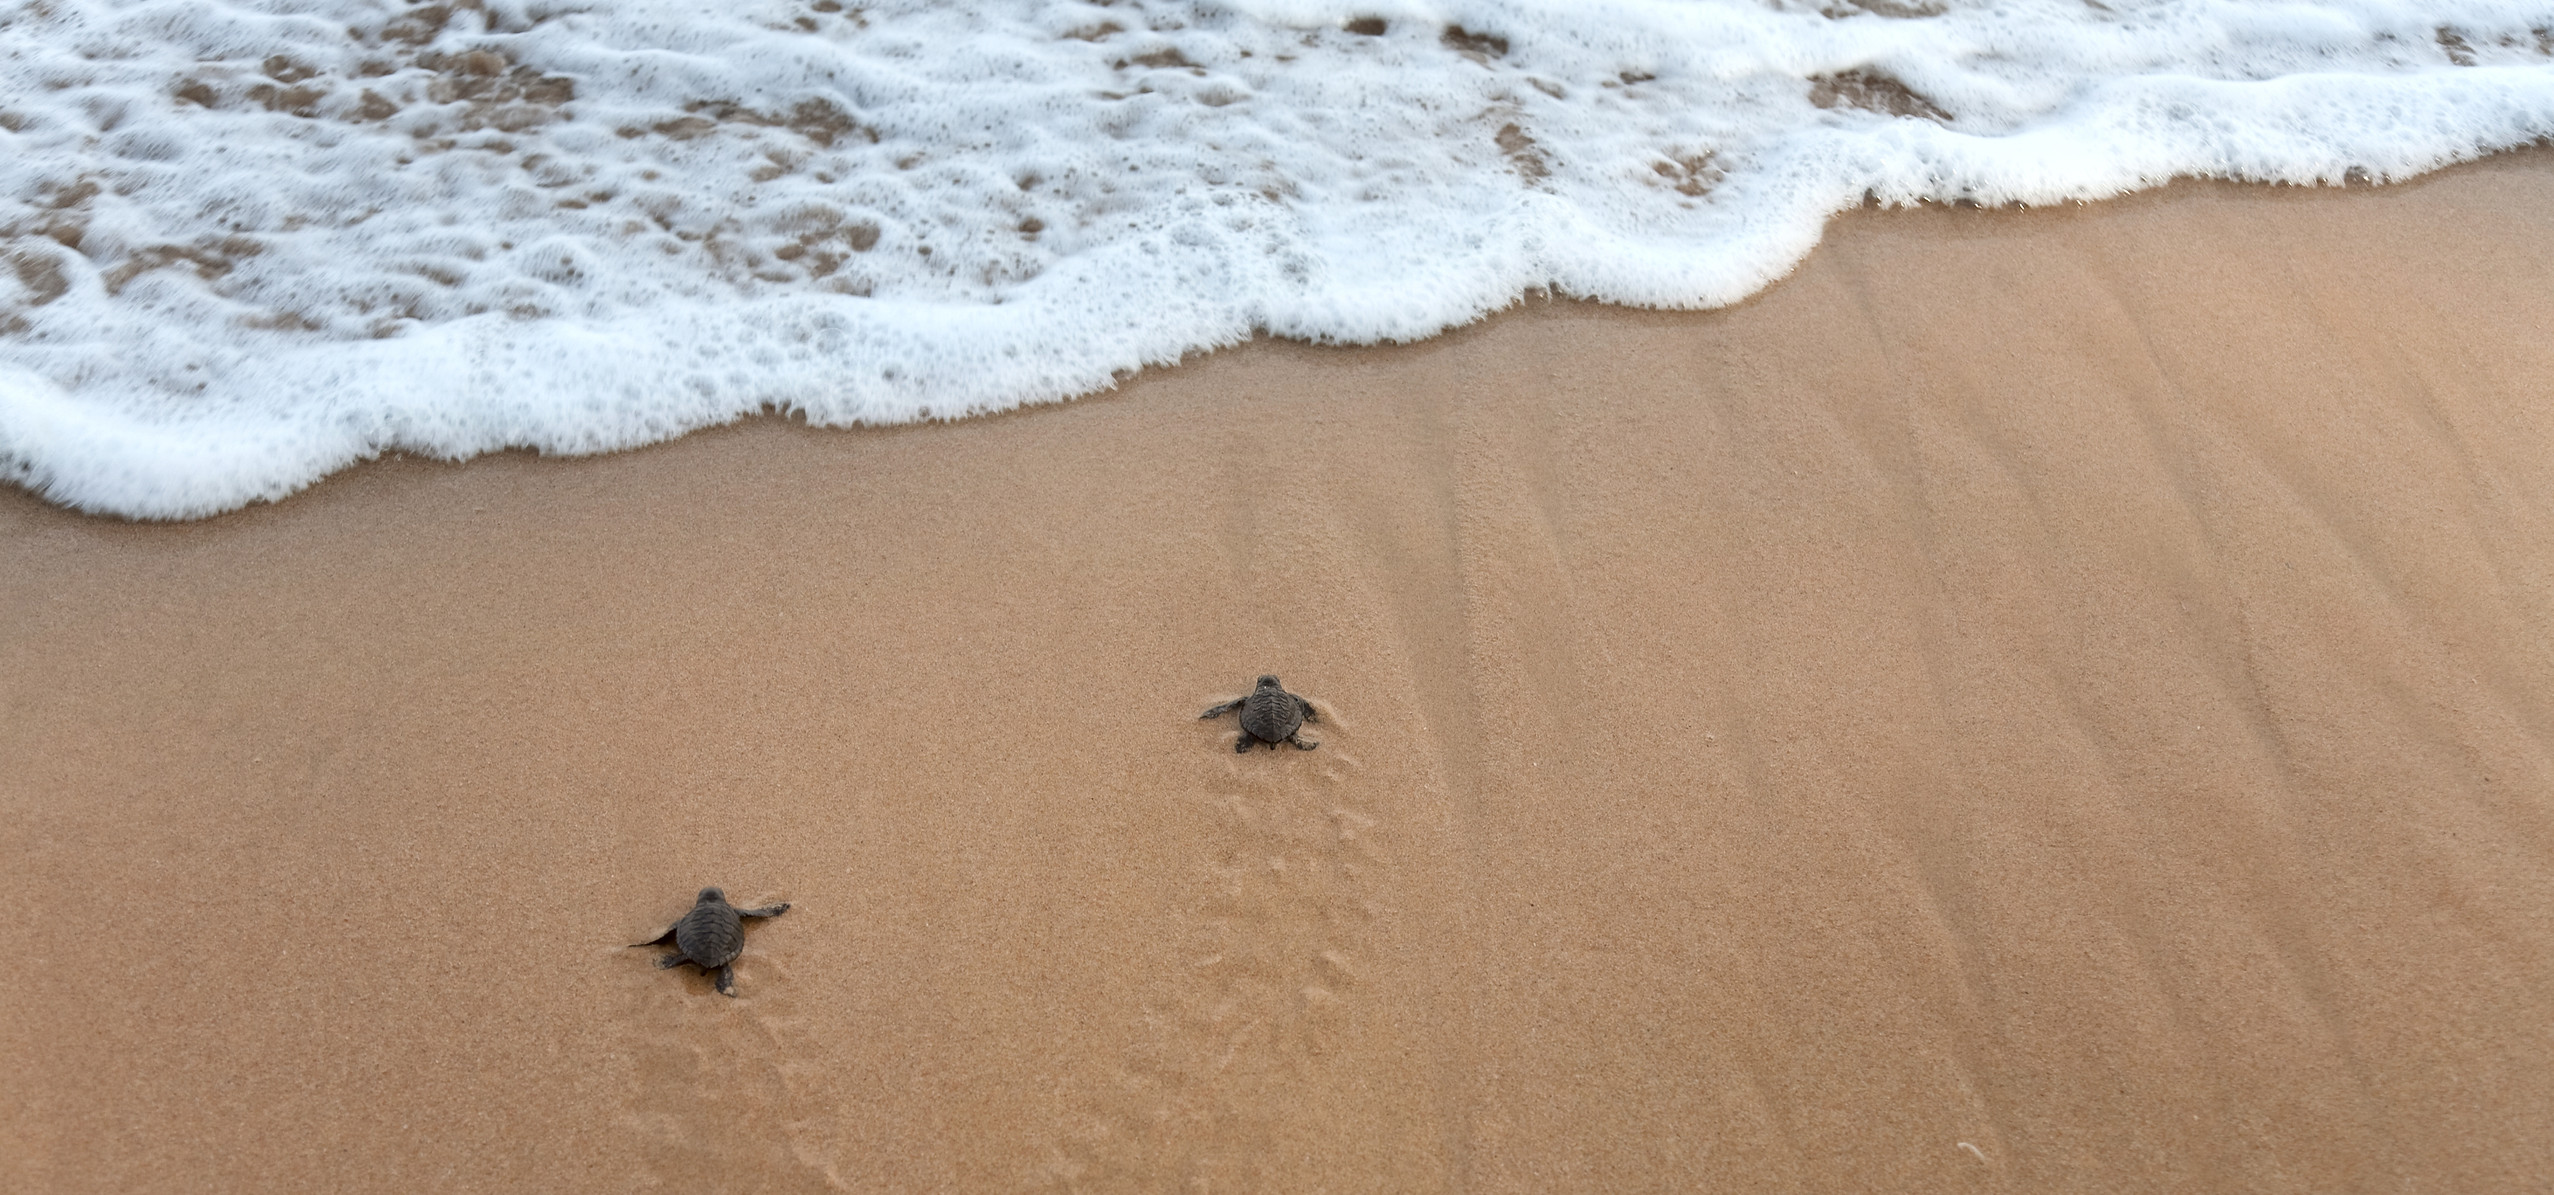 BabyTurtles_on_the_beach.jpeg